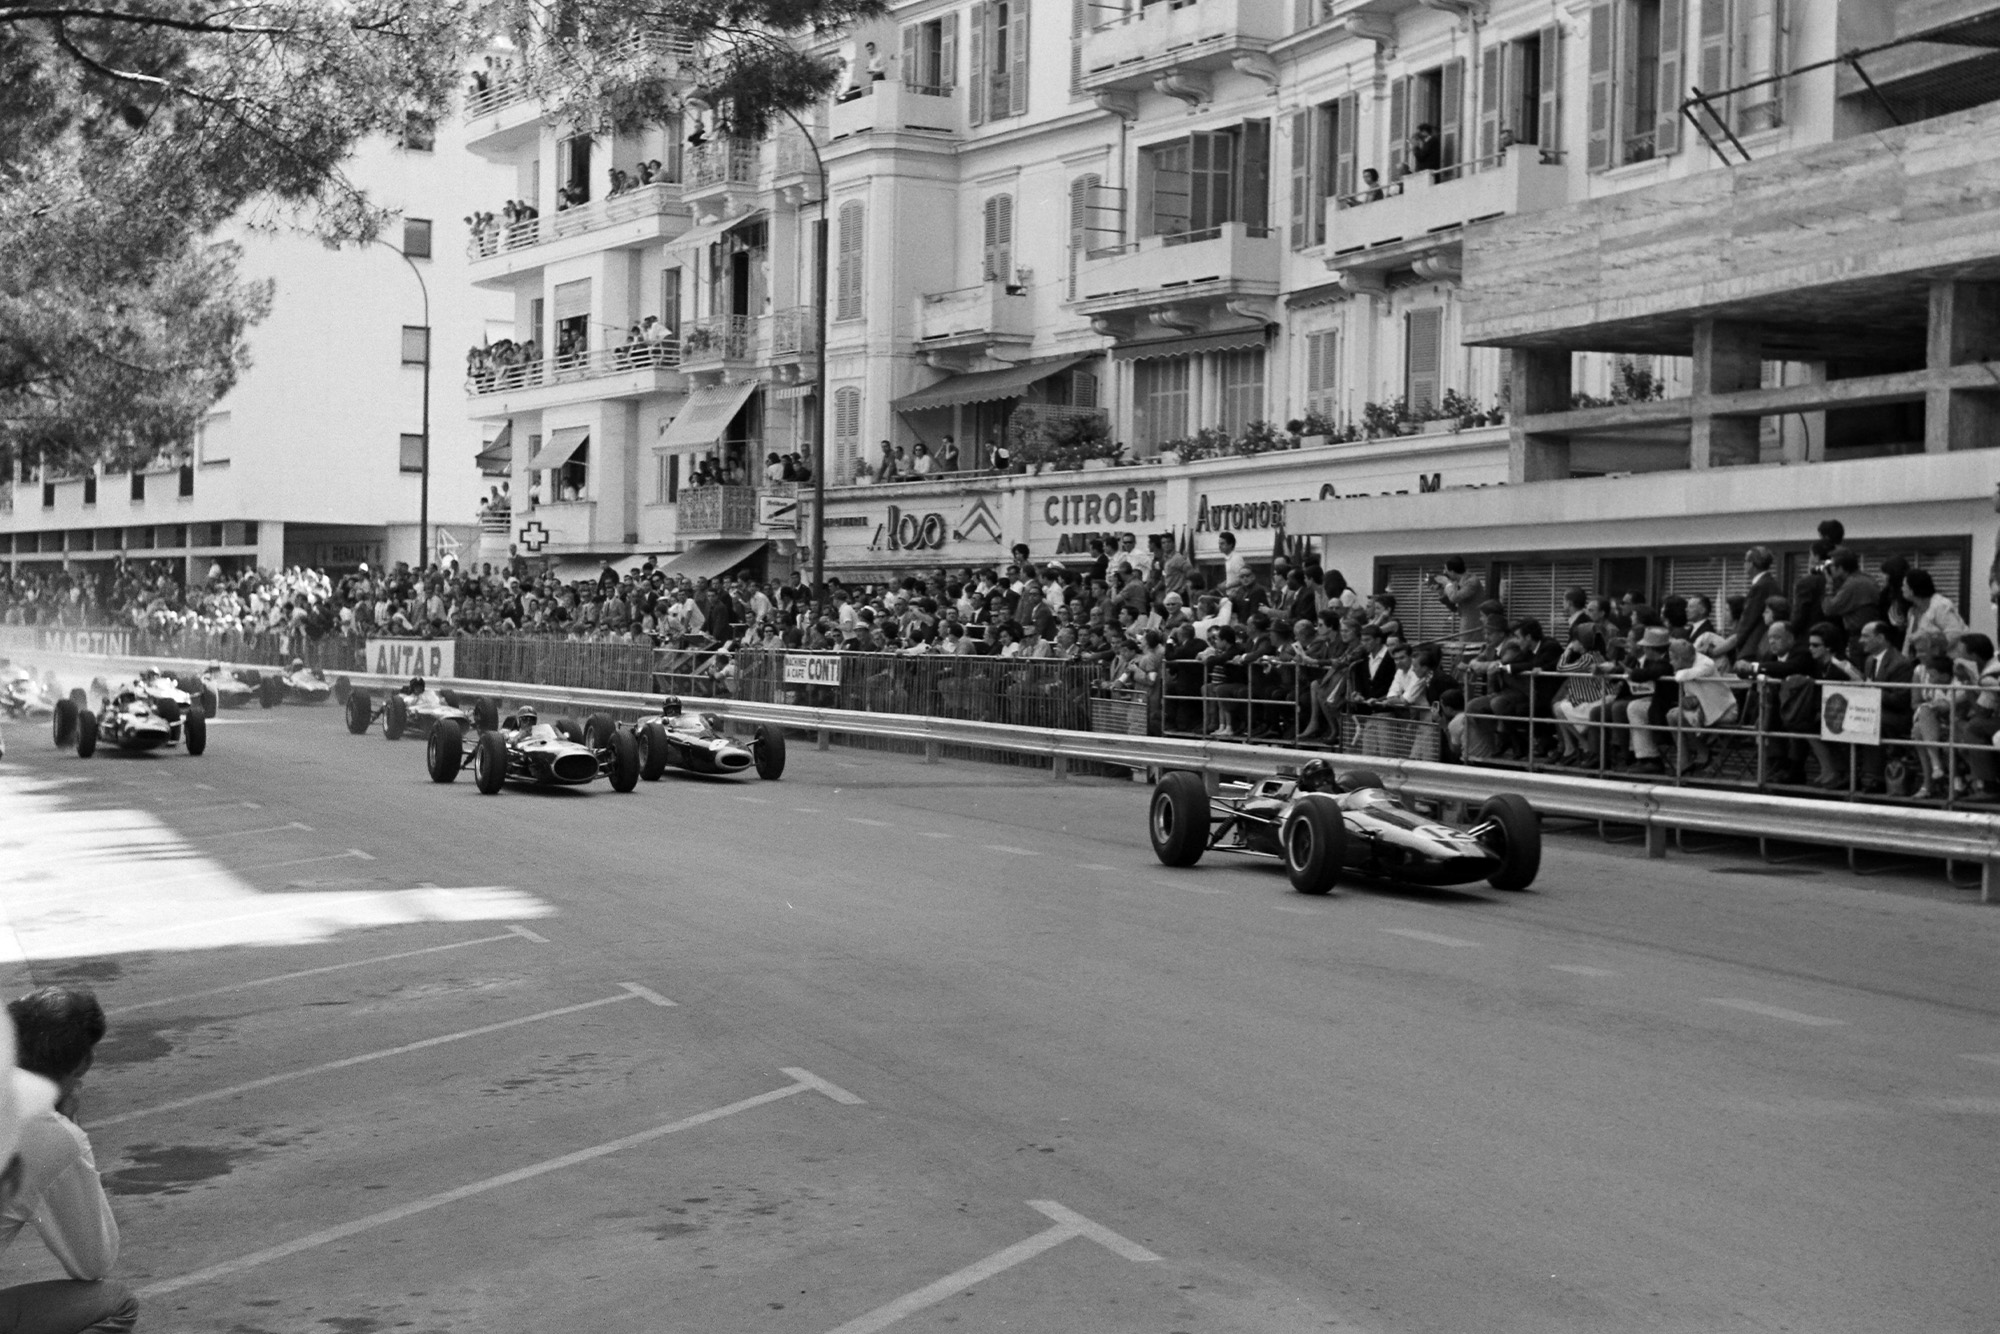 Jim Clark, Lotus 25 Climax, leads the field at the start.